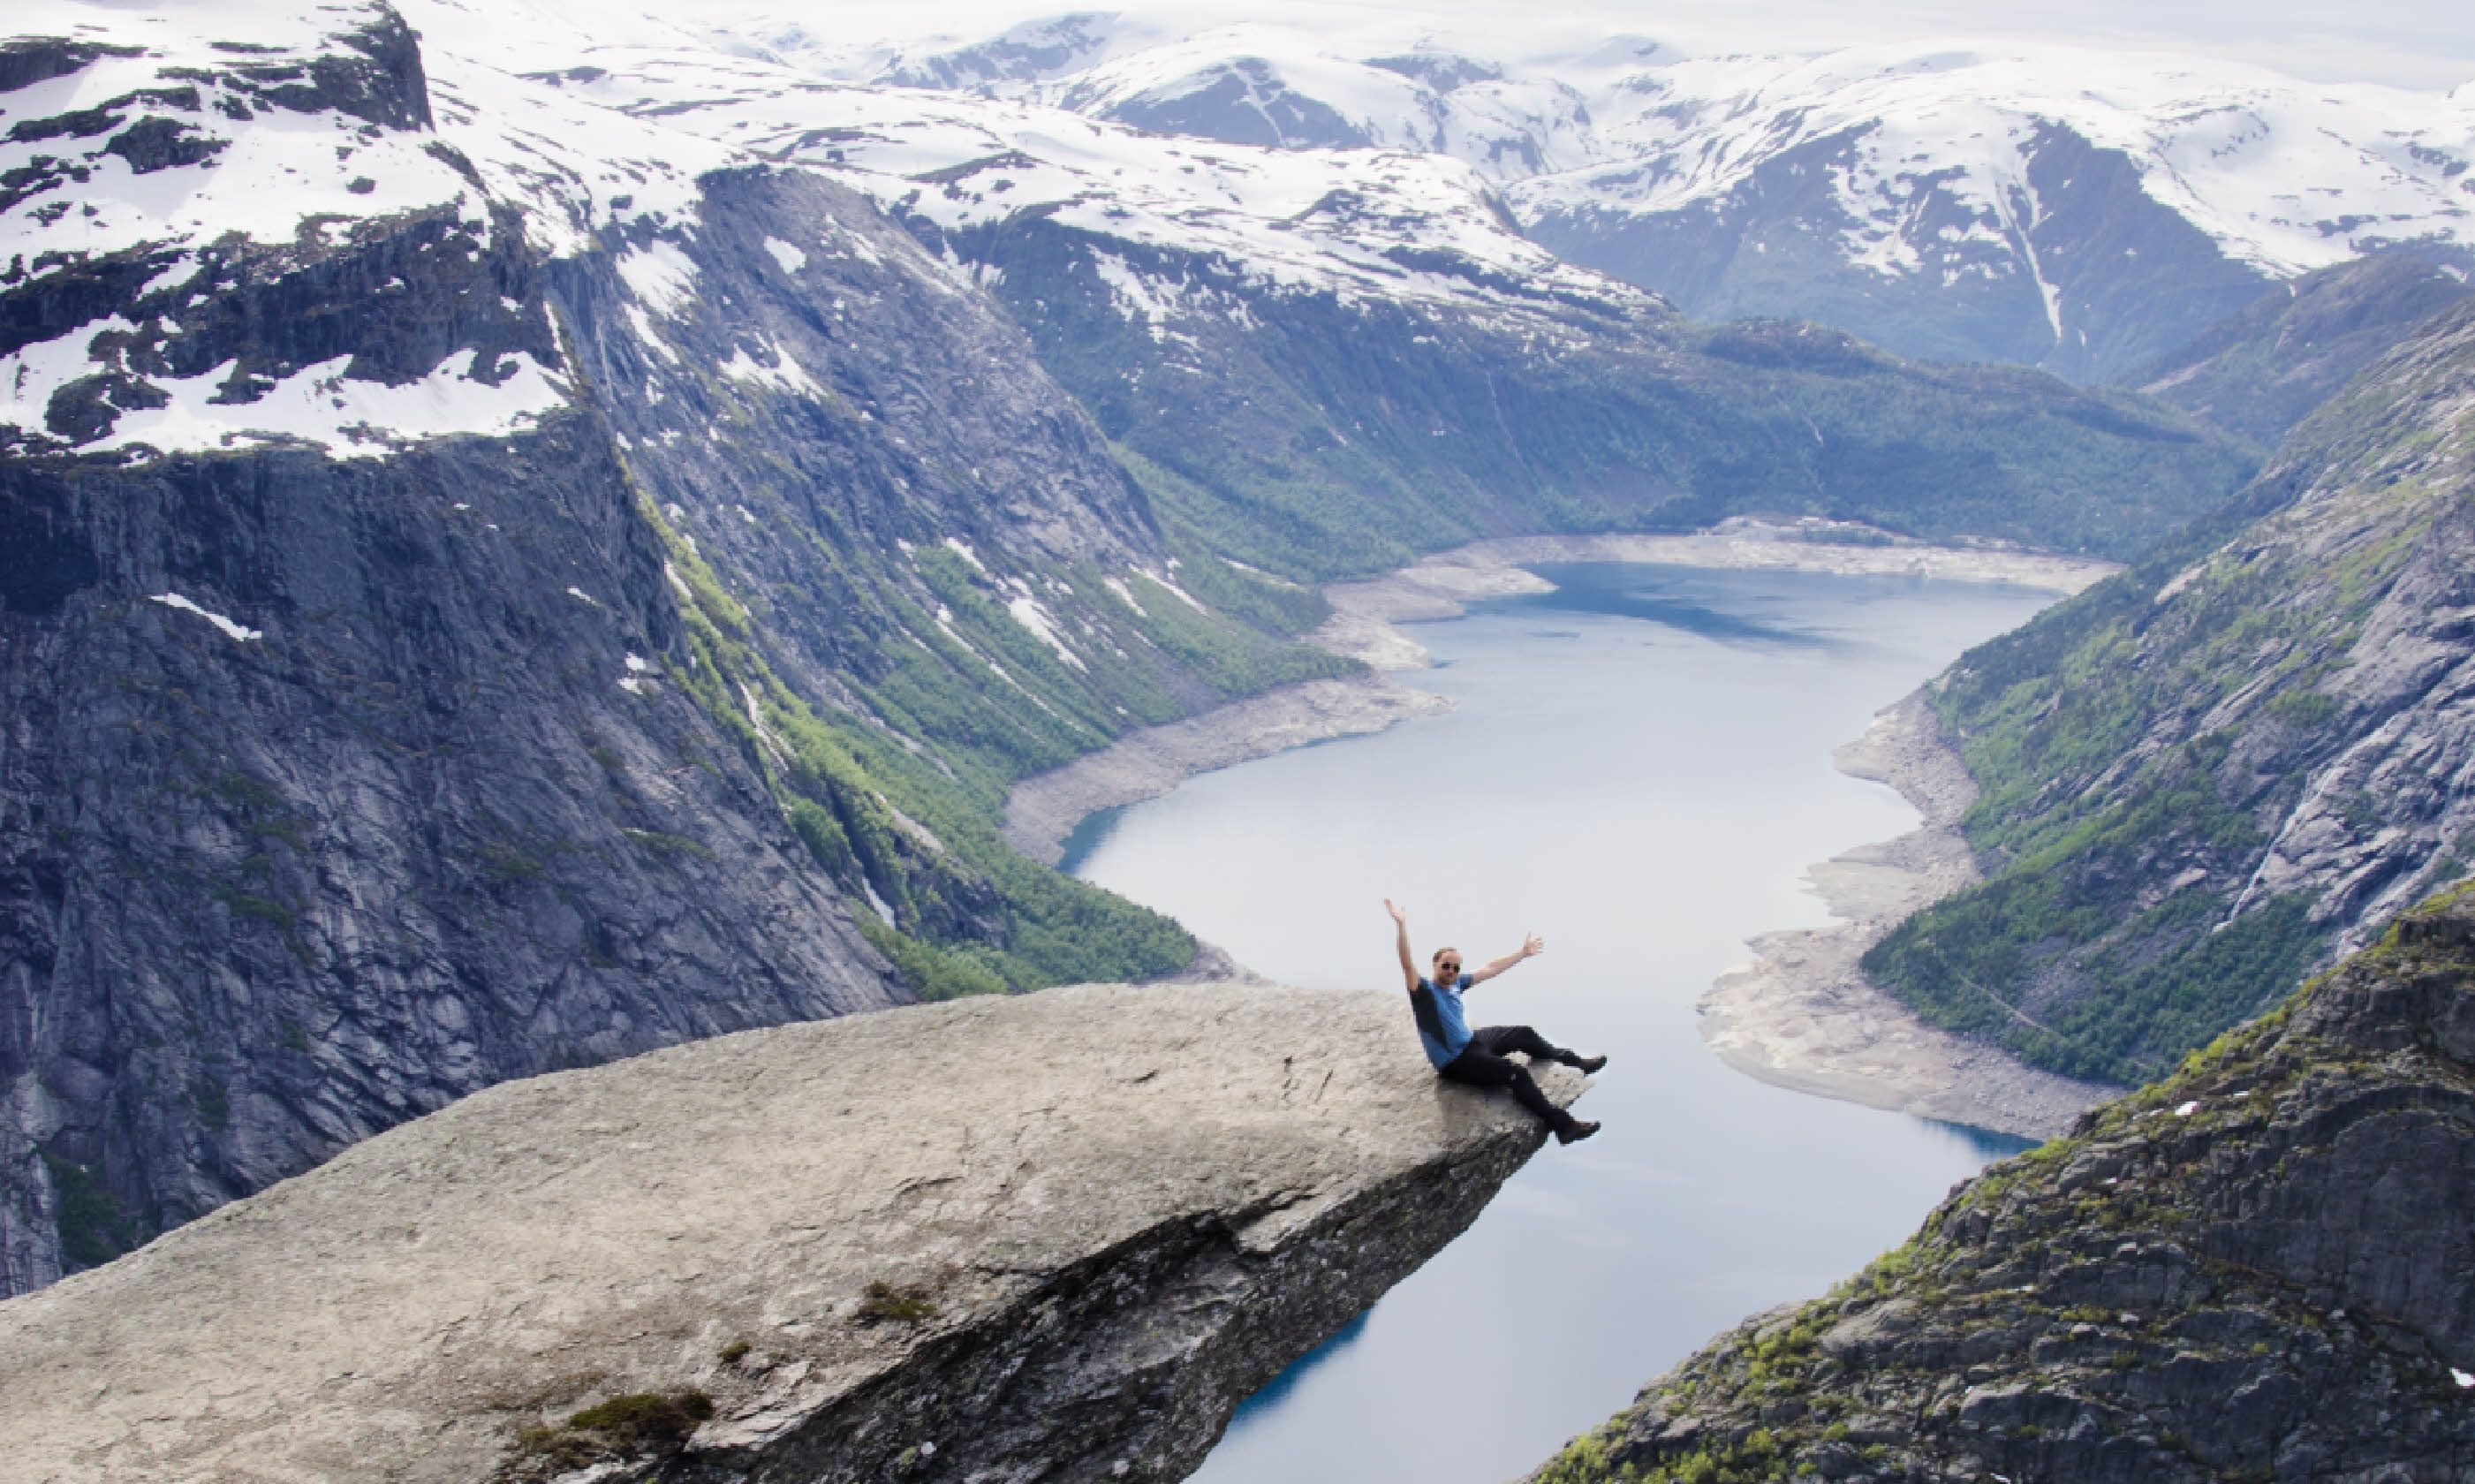 Dangling on the edge of Trolltunga (Neil S Price)